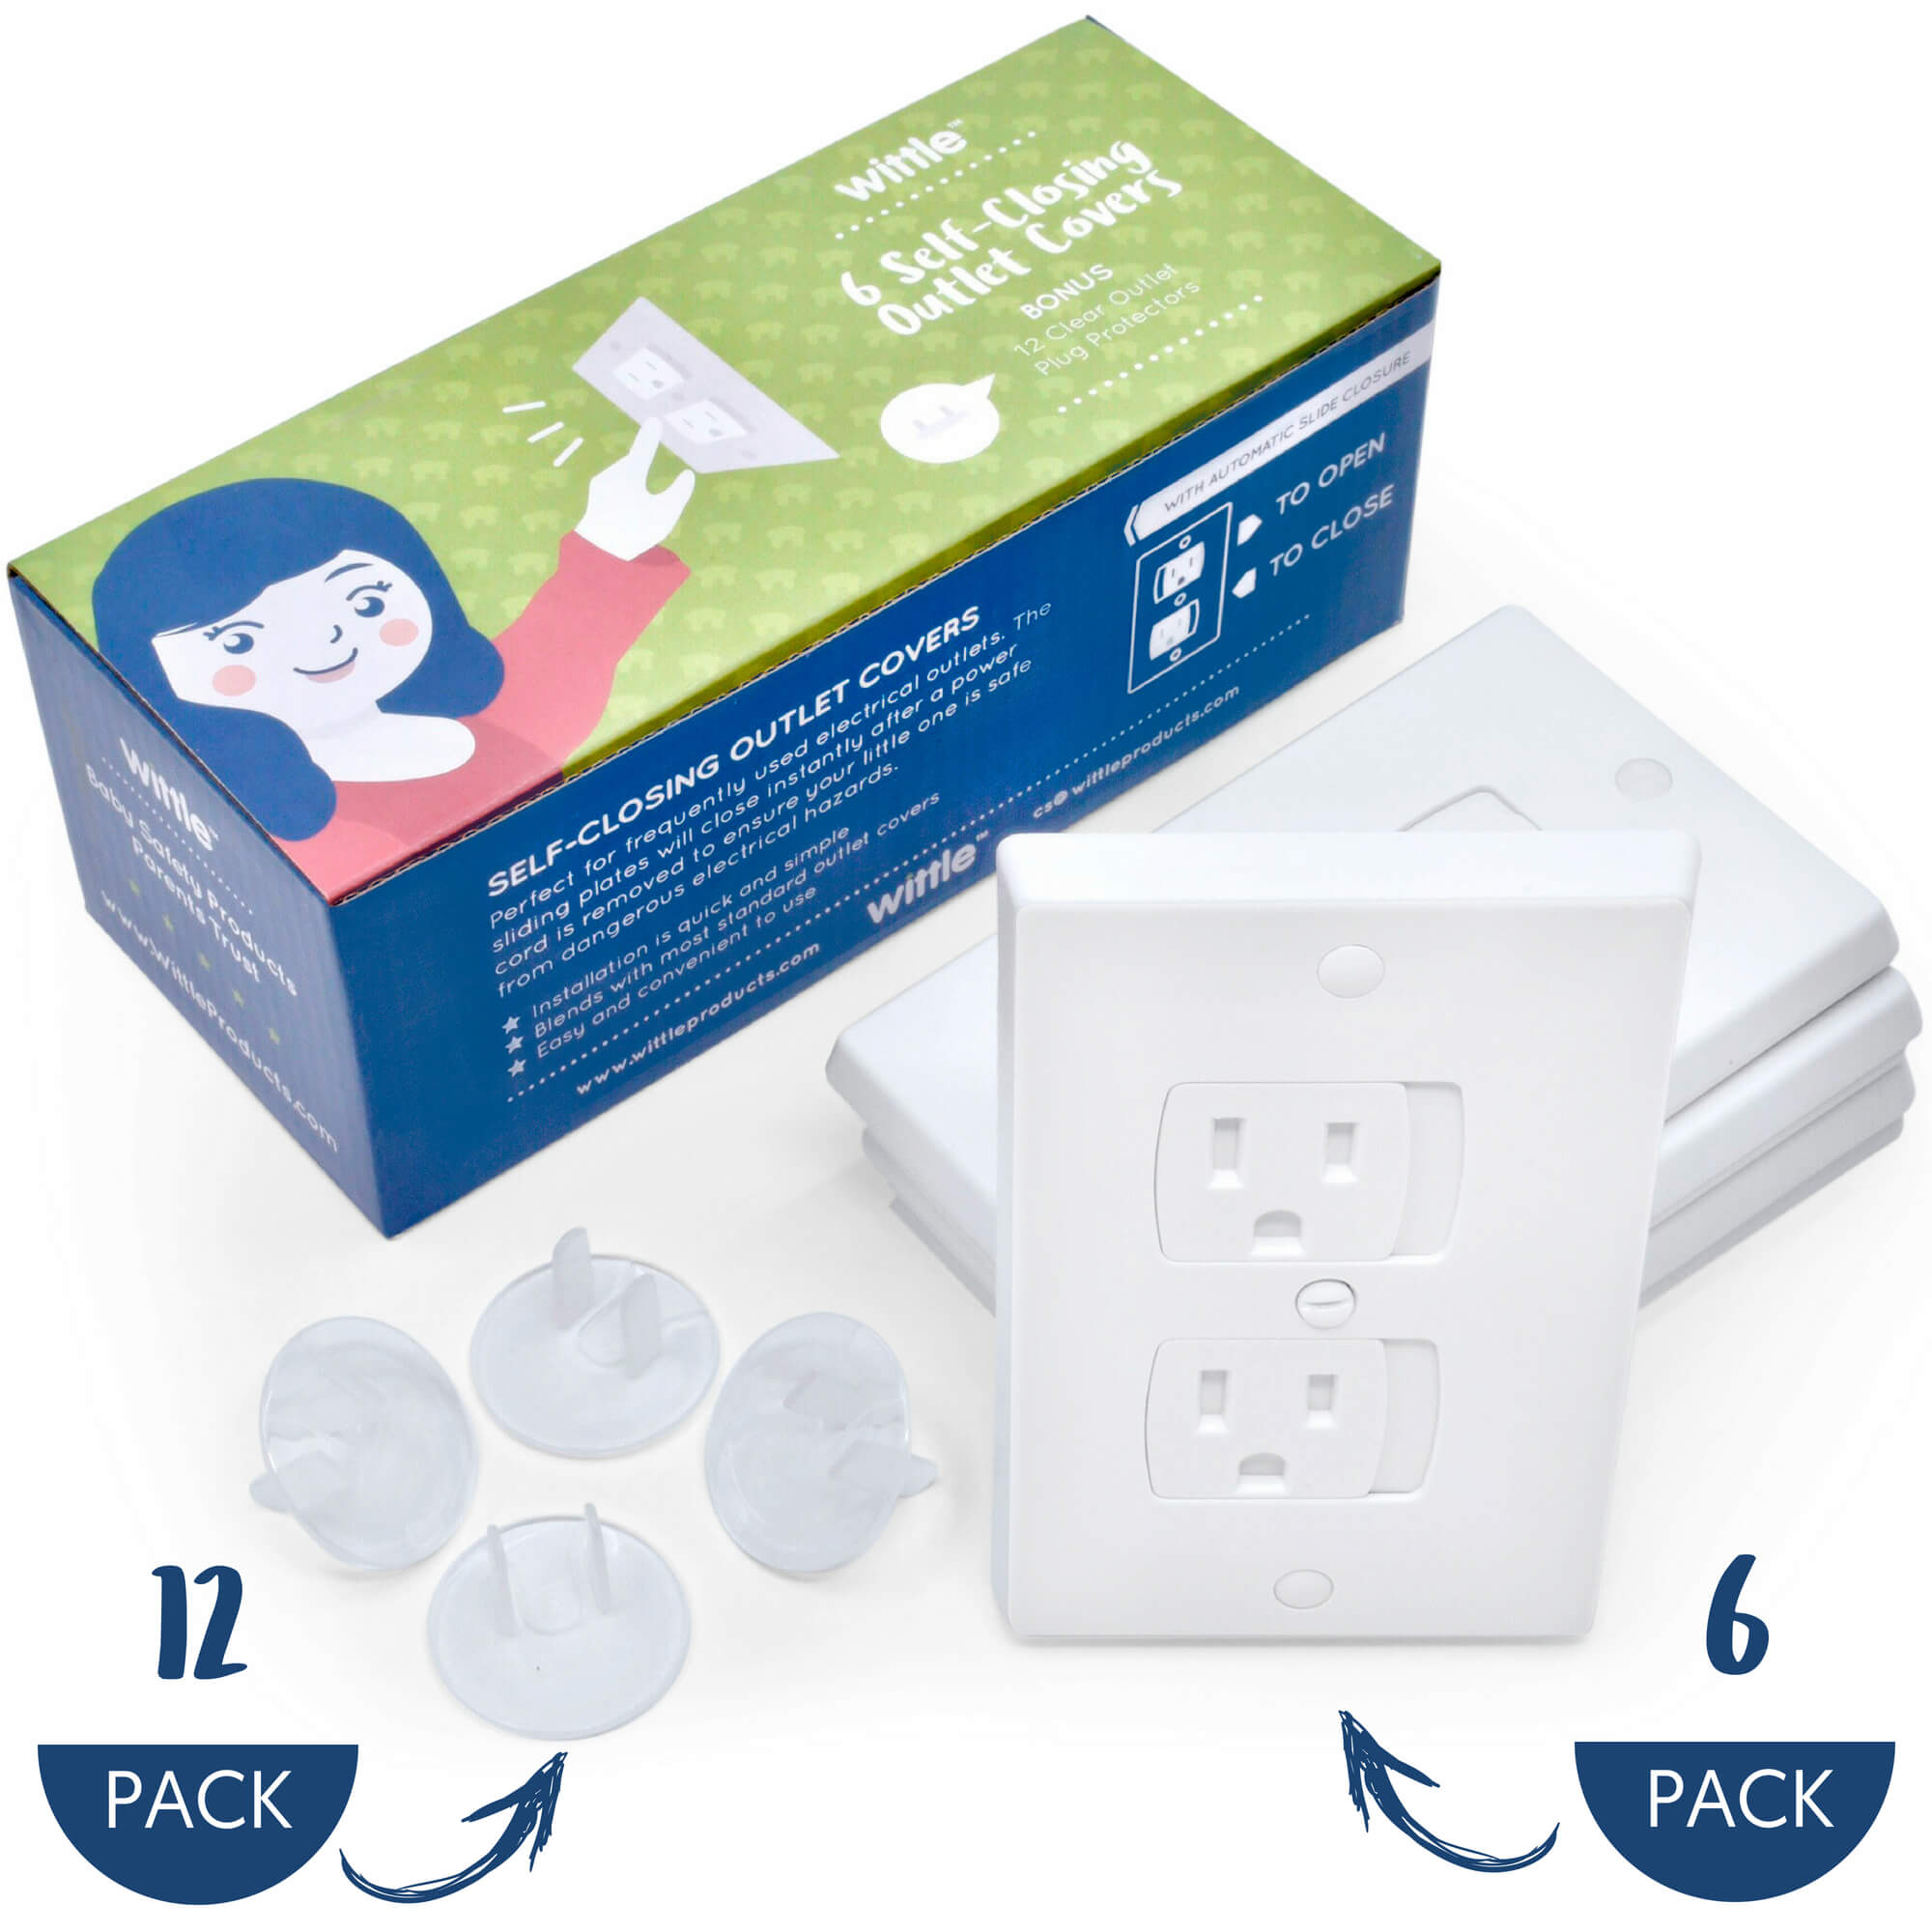 Wittle Self Closing Outlet Covers 6 Pack Plus Plug Cover Outlet Protectors 12 Pack | Child Safety | Baby Proof... by Wittle